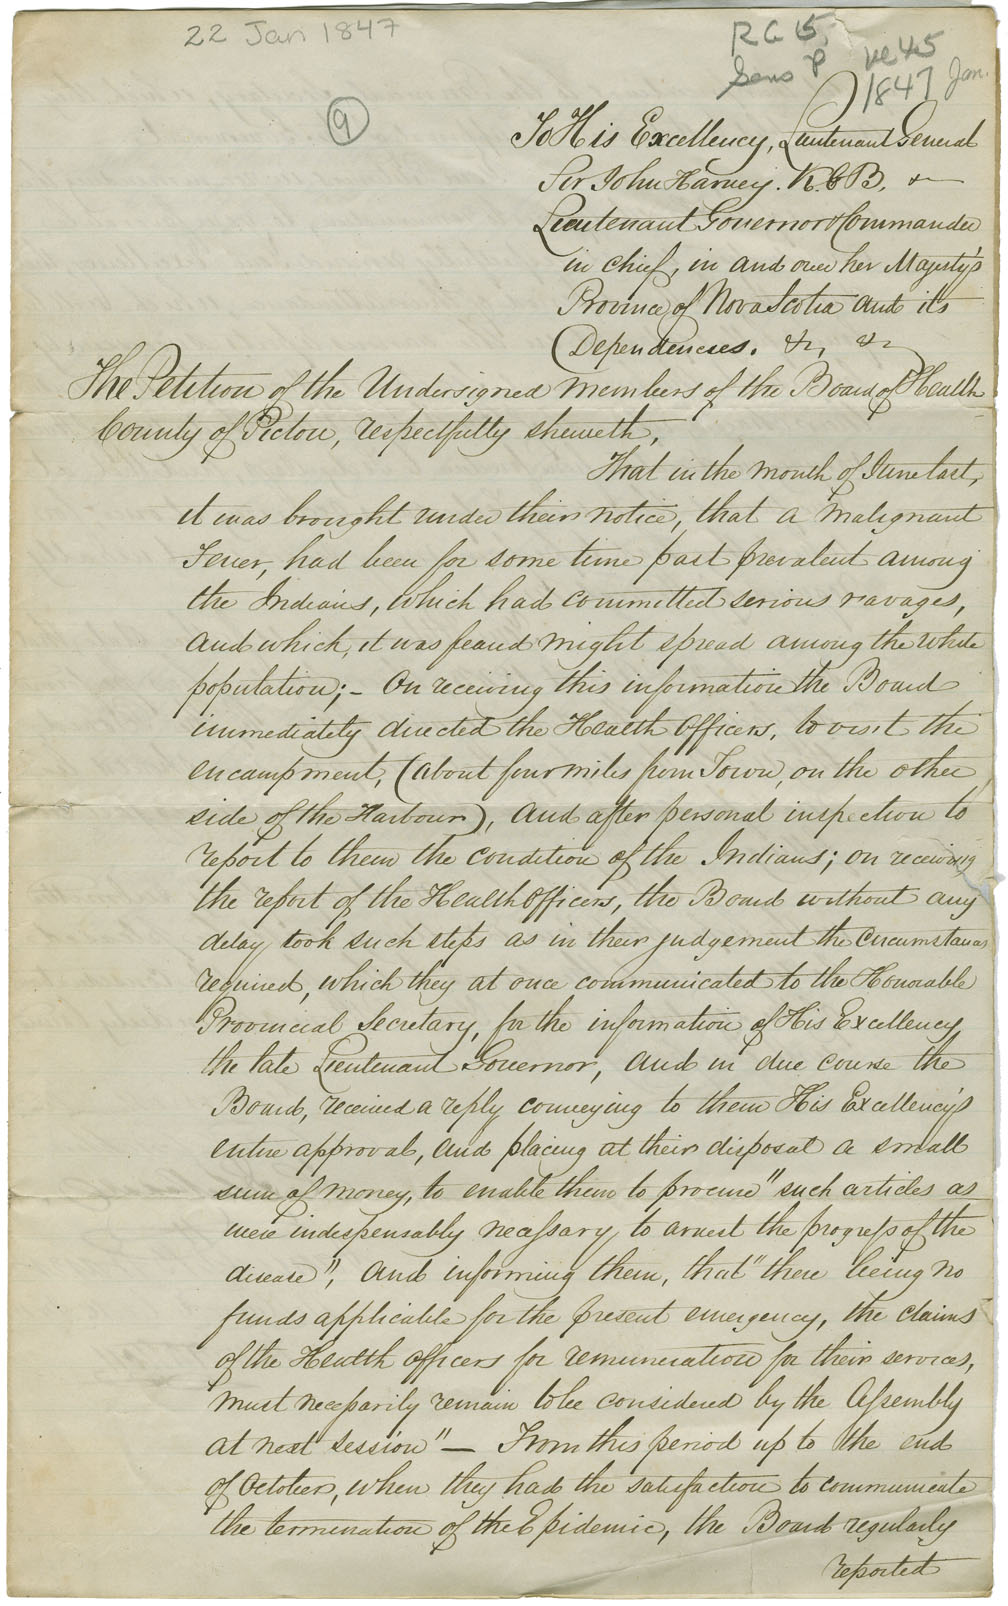 Petition of the Board of Health, Pictou County, recommending the payment of the annexed bill for attending the sick Mi'kmaq.